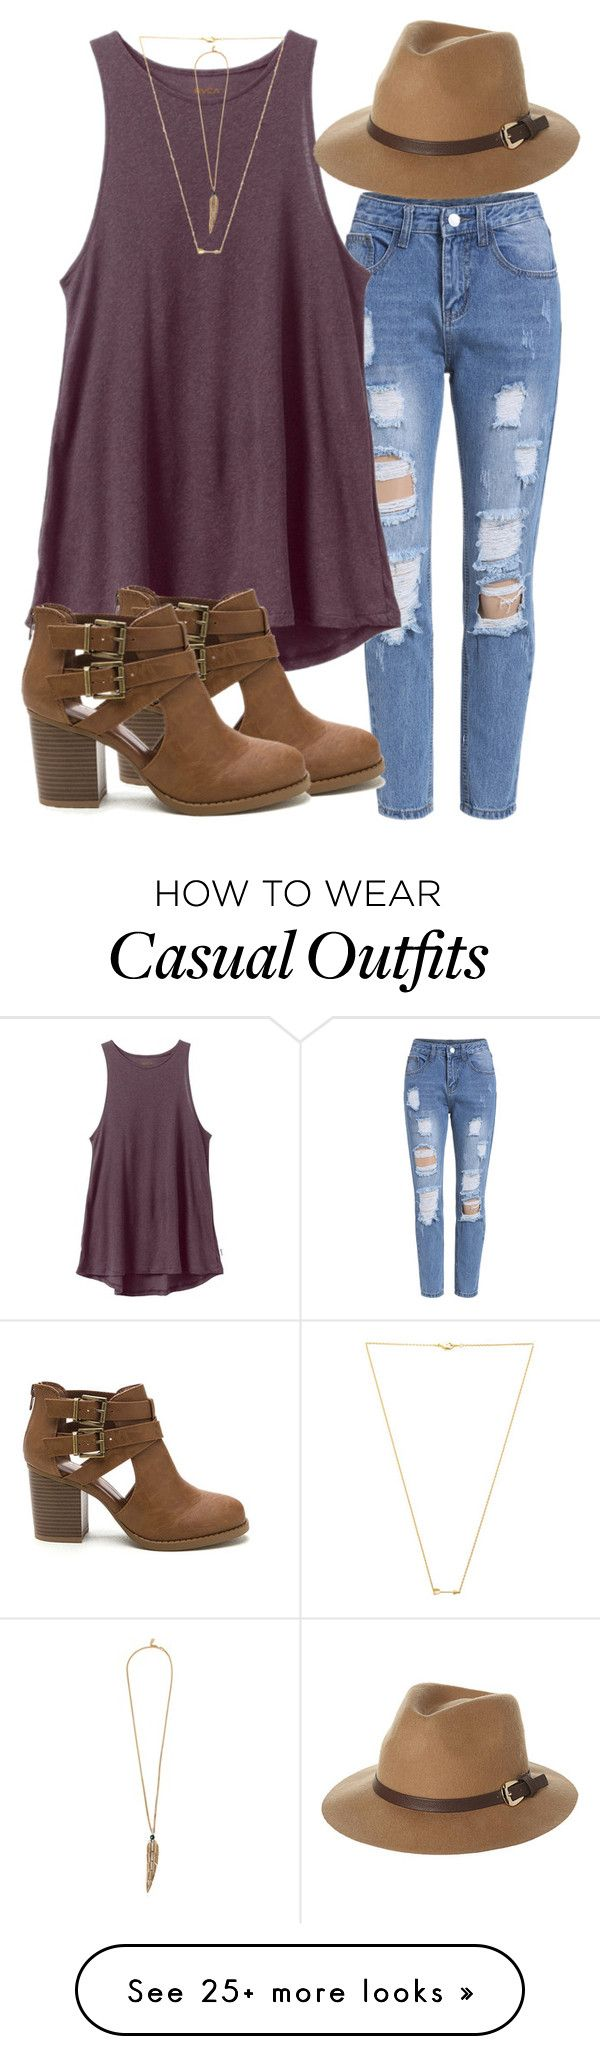 """Casual"" by j2205 on Polyvore featuring RVCA, Rusty, Wanderlust + Co, Roberto Cavalli, women's clothing, w"